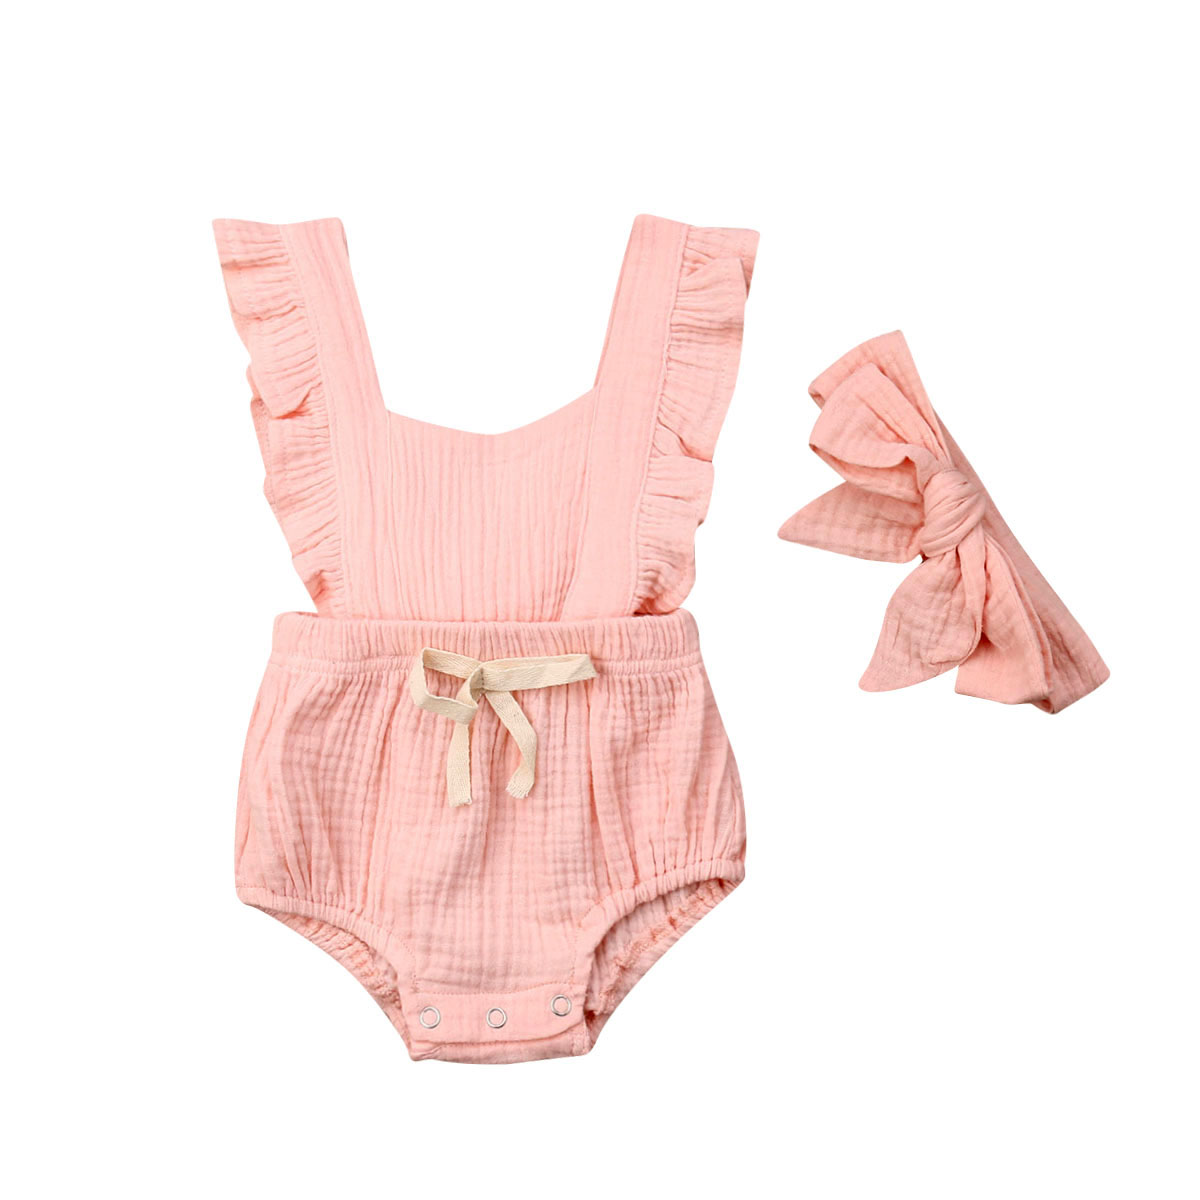 Newborn Baby Girl Cotton Linen Romper Flutter Sleeve One-Piece Jumpsuit Solid Drawstring Waist Outfits Clothes with Headband